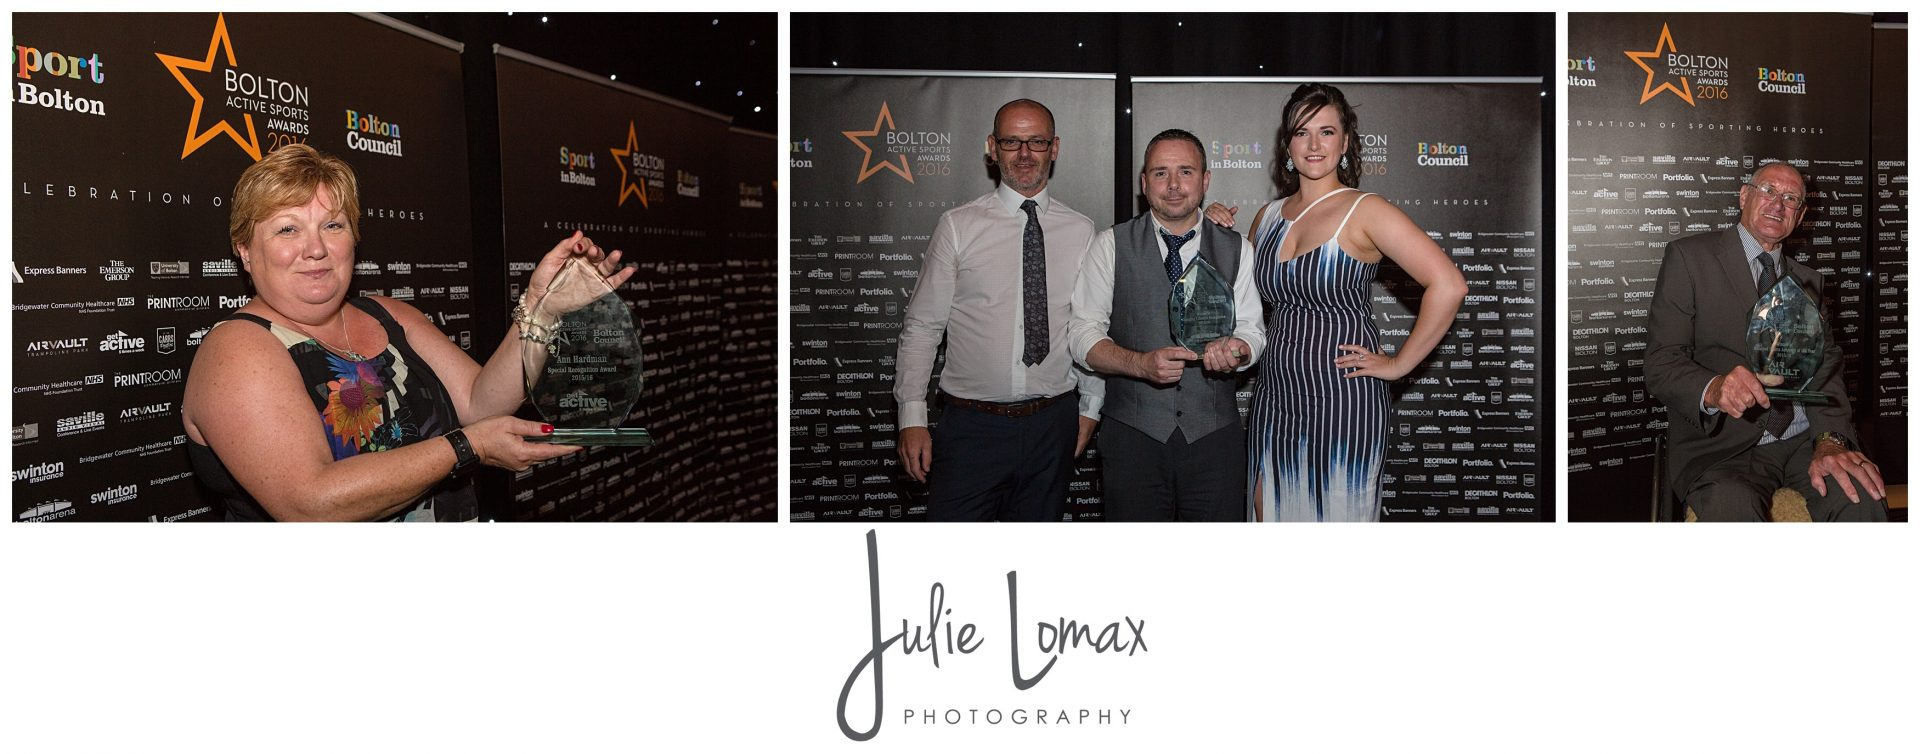 Bolton Sports Awards_0011